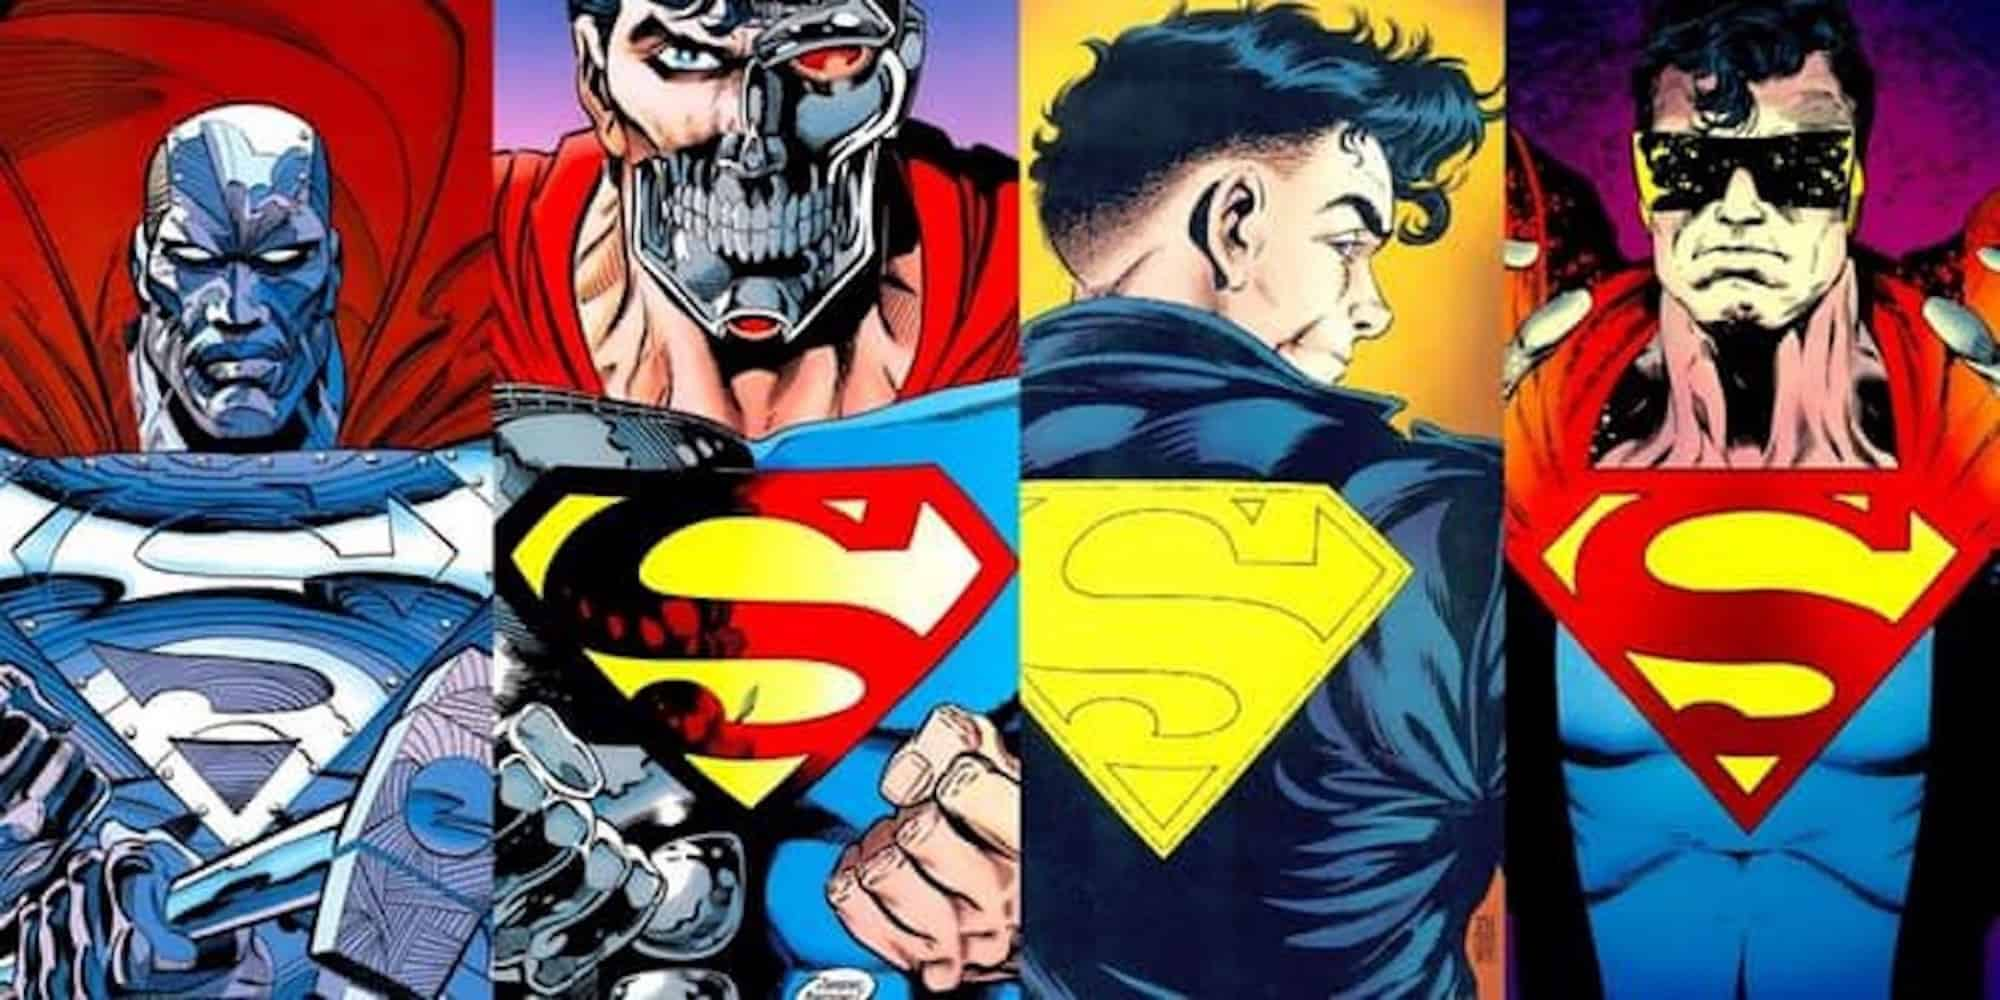 #Supermensquad: L to R - John Henry Irons, Hank Henshaw, Superman (Camdus Clone), Eradicator (Superman's Nanny)